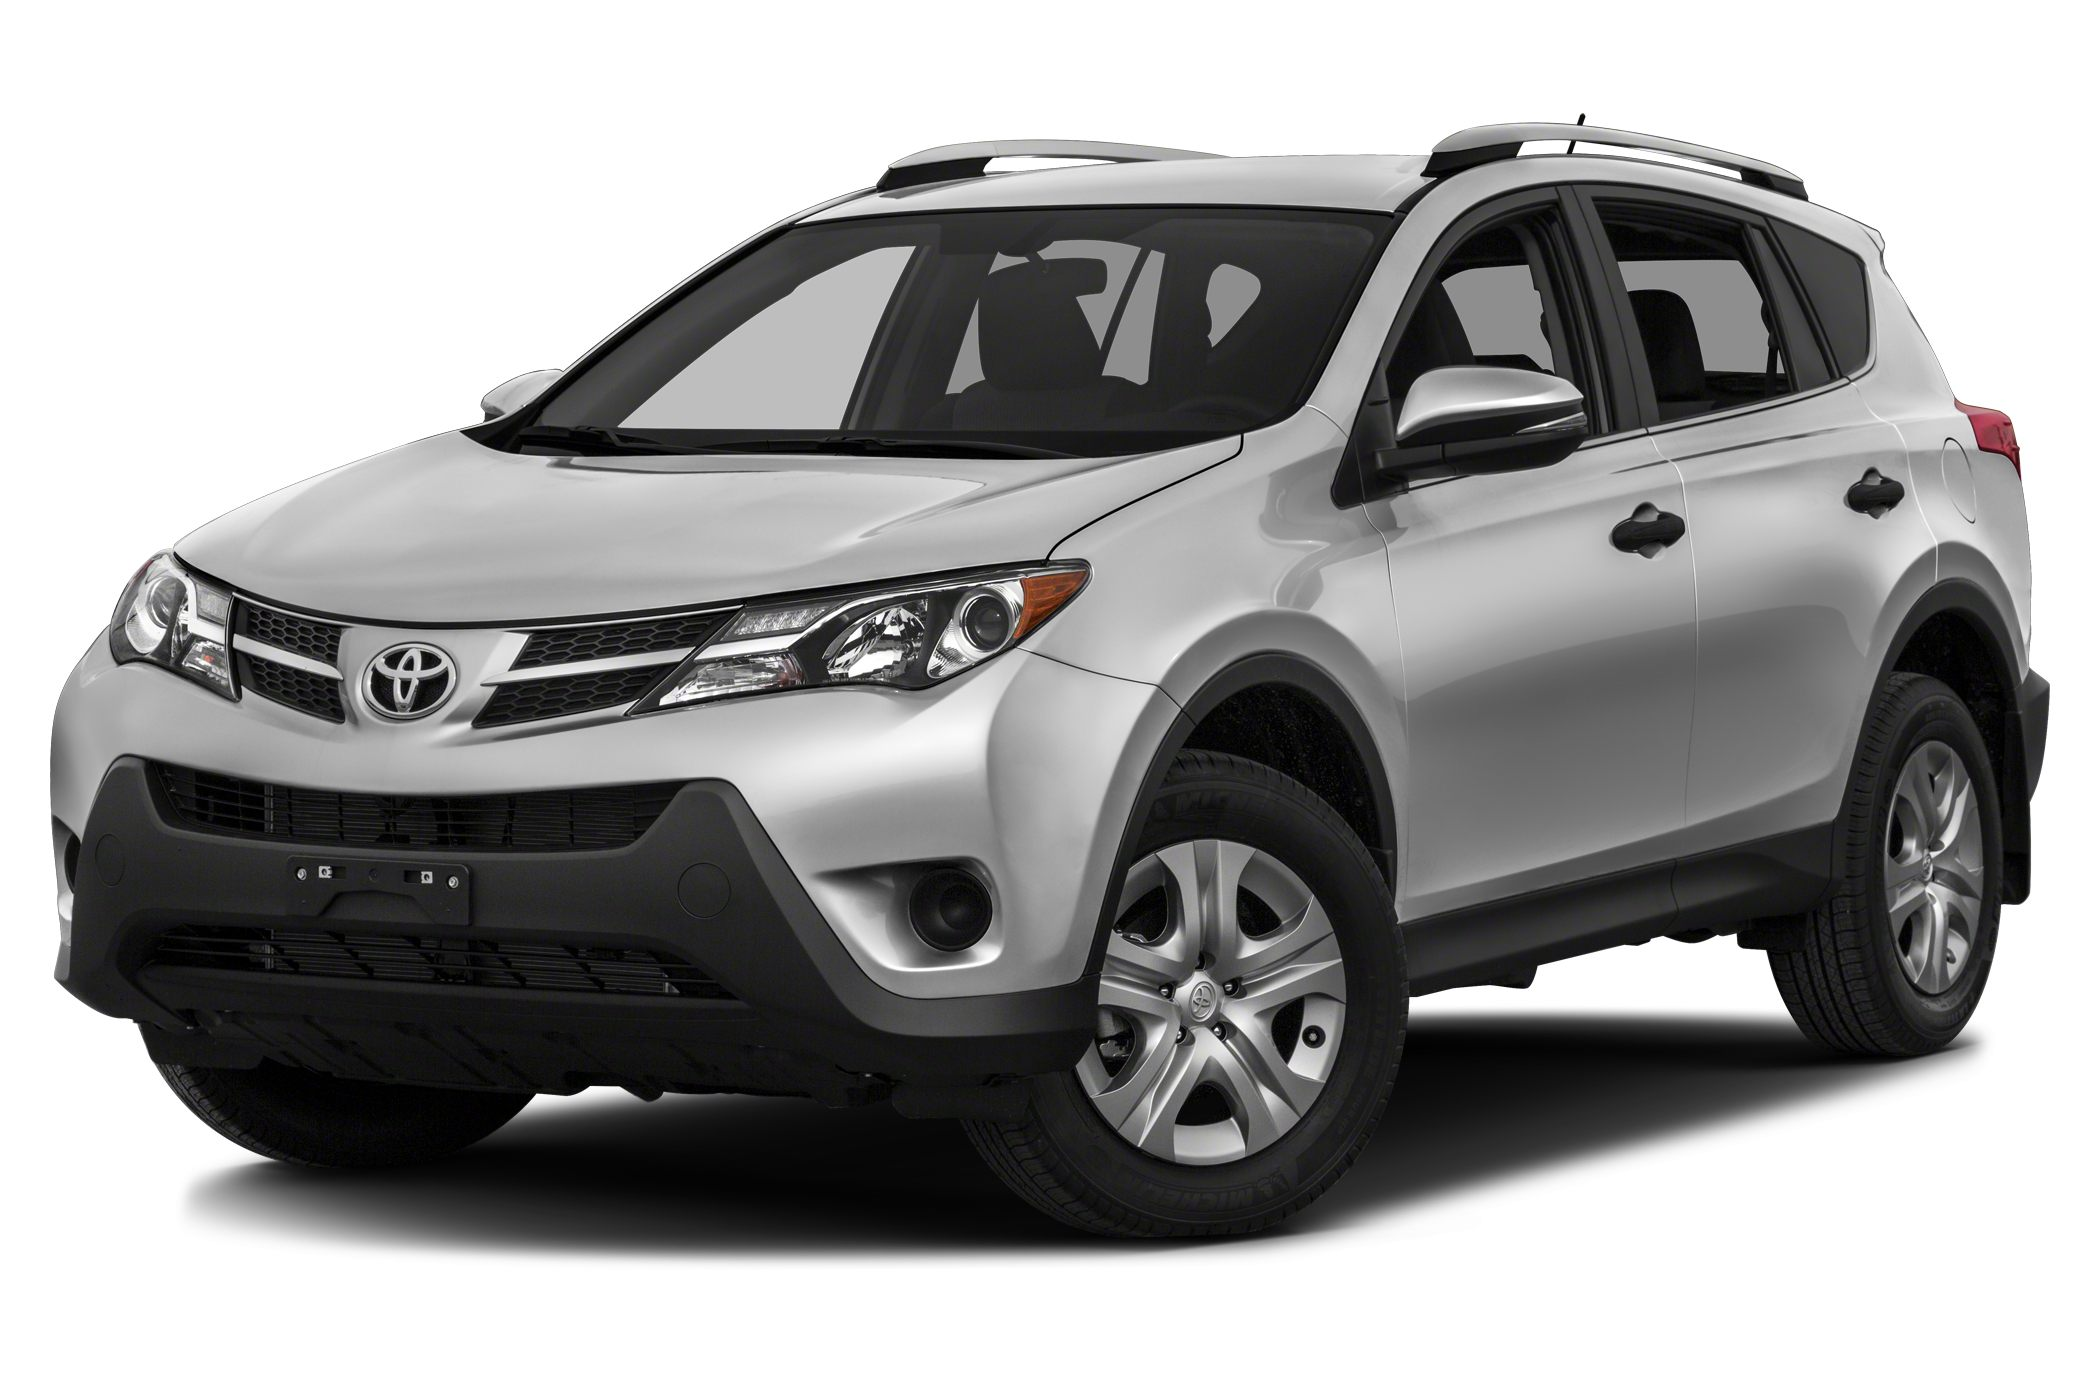 2014 Toyota RAV4 LE CARFAX 1-Owner LOW MILES - 31644 LE trim EPA 29 MPG Hwy22 MPG City iPod